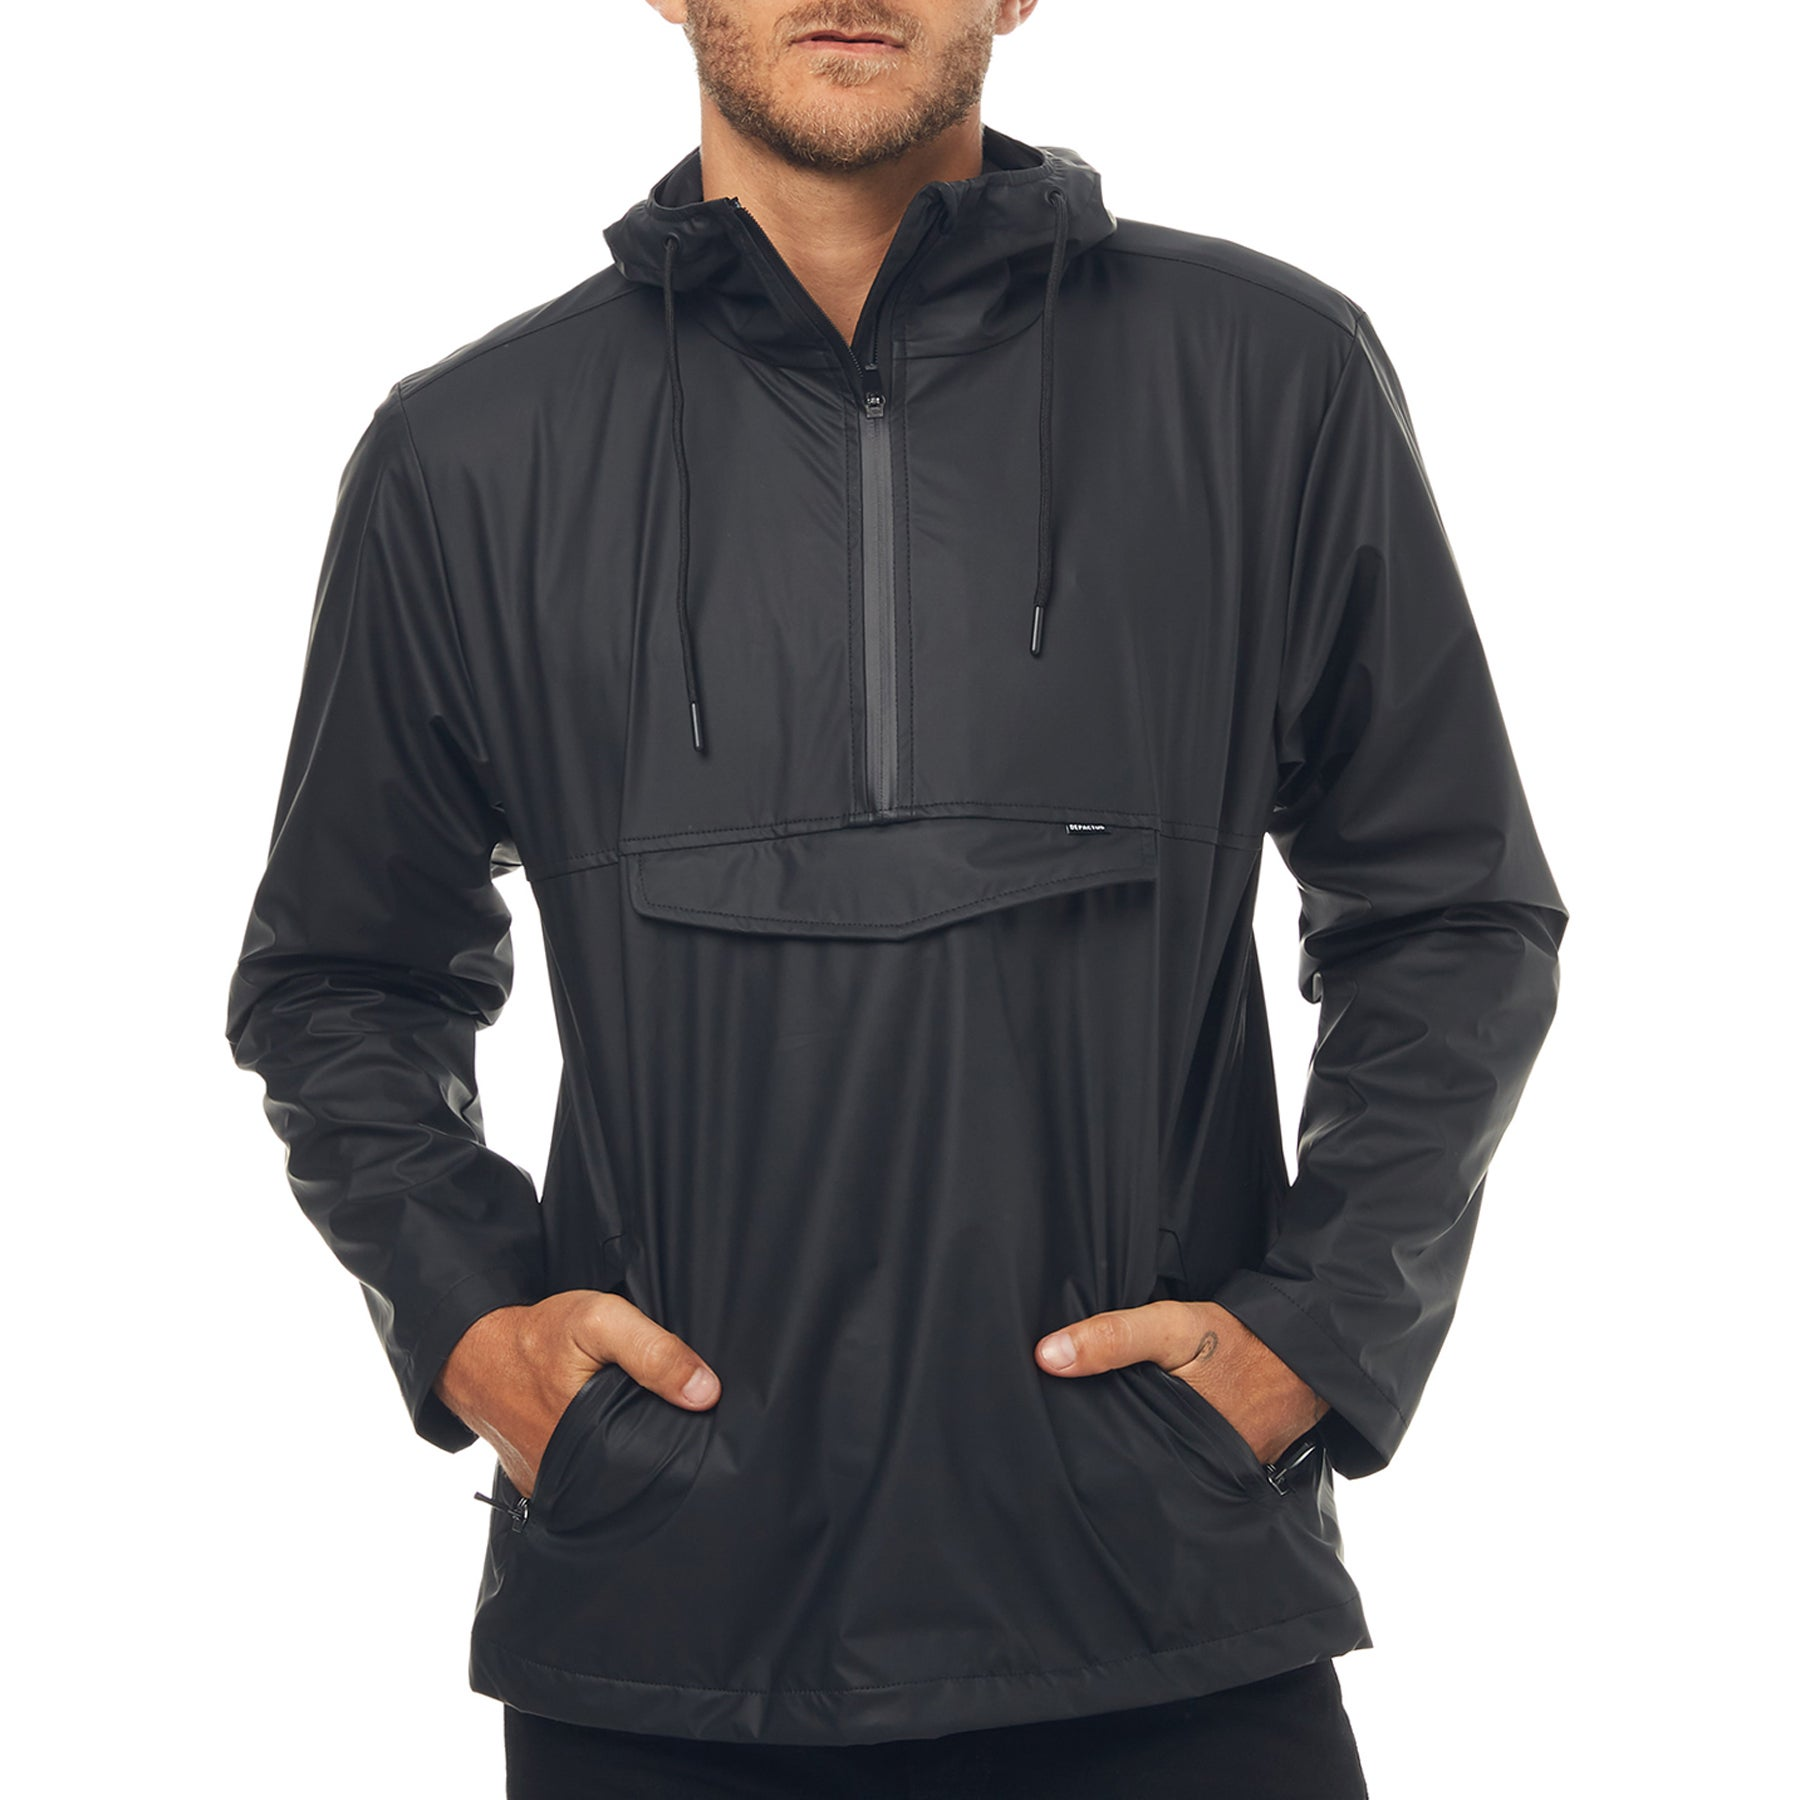 Depactus Rapids Anorak Jacket - Black